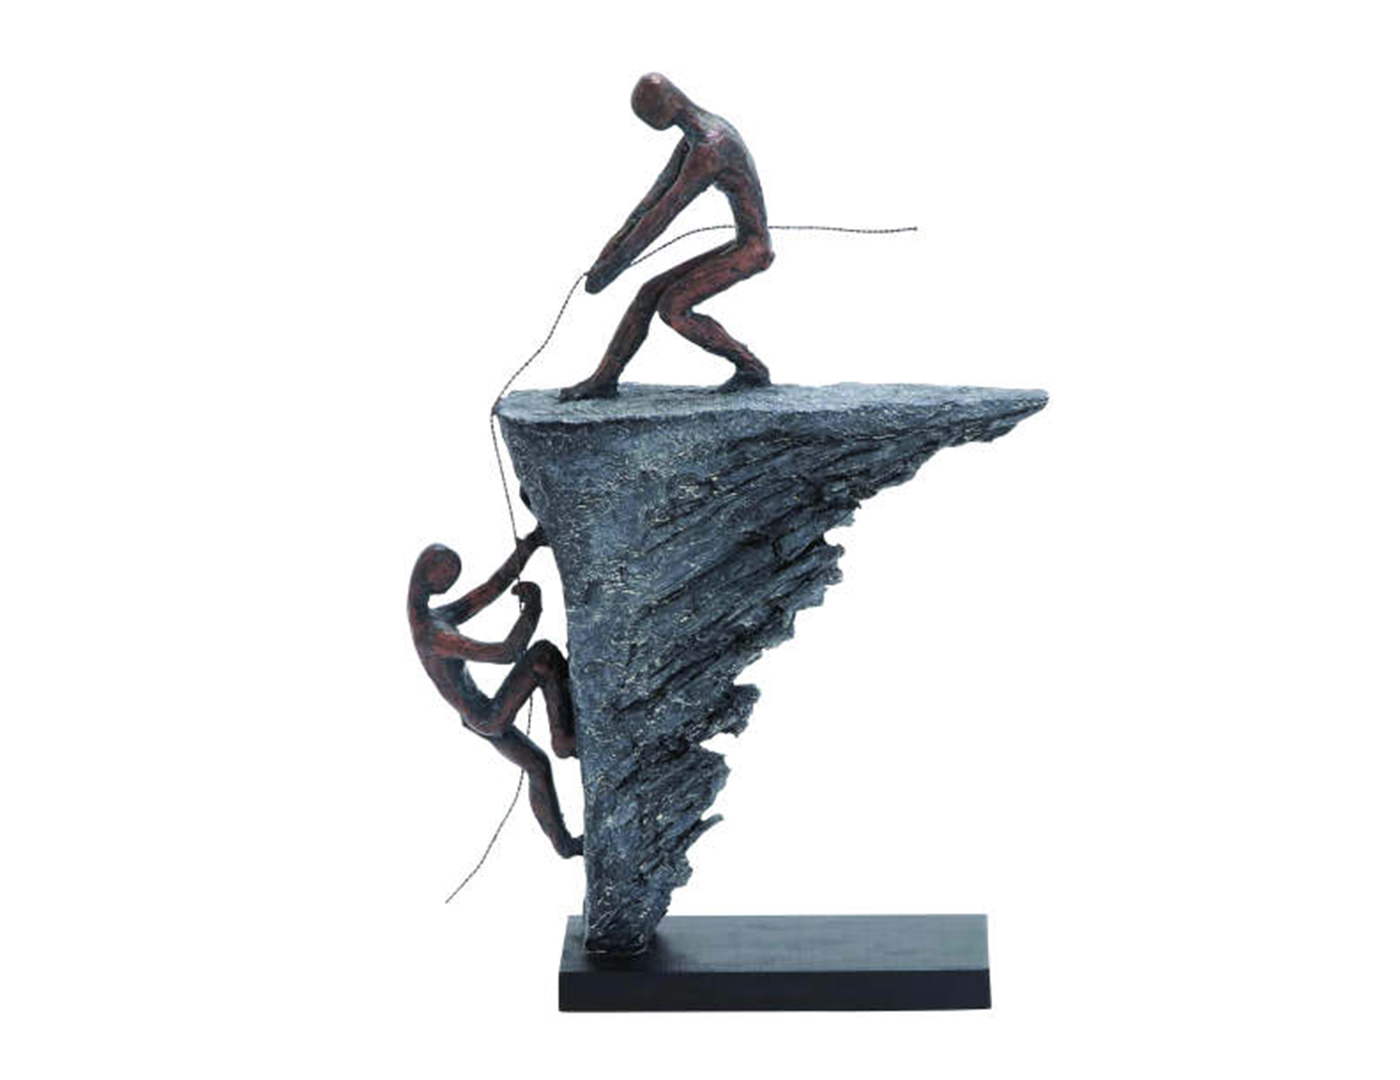 Rock Climbing Sculpture 11X16""